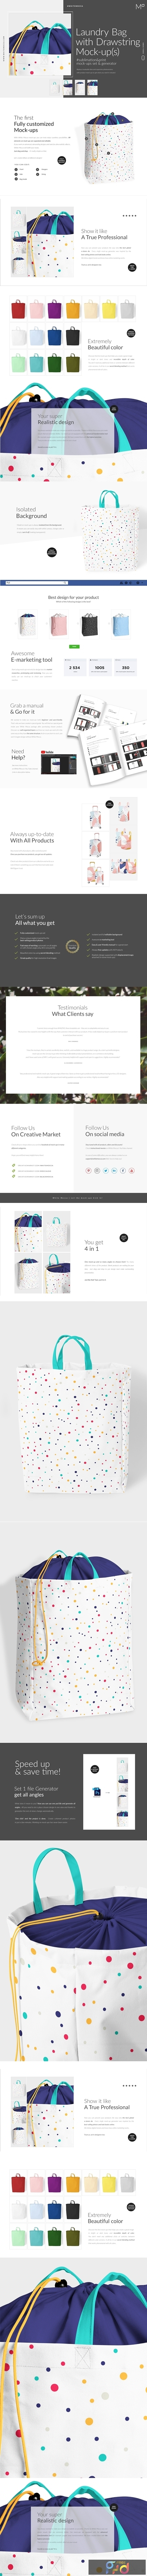 Laundry Bag With Drawstring Mock-ups 3857211 1